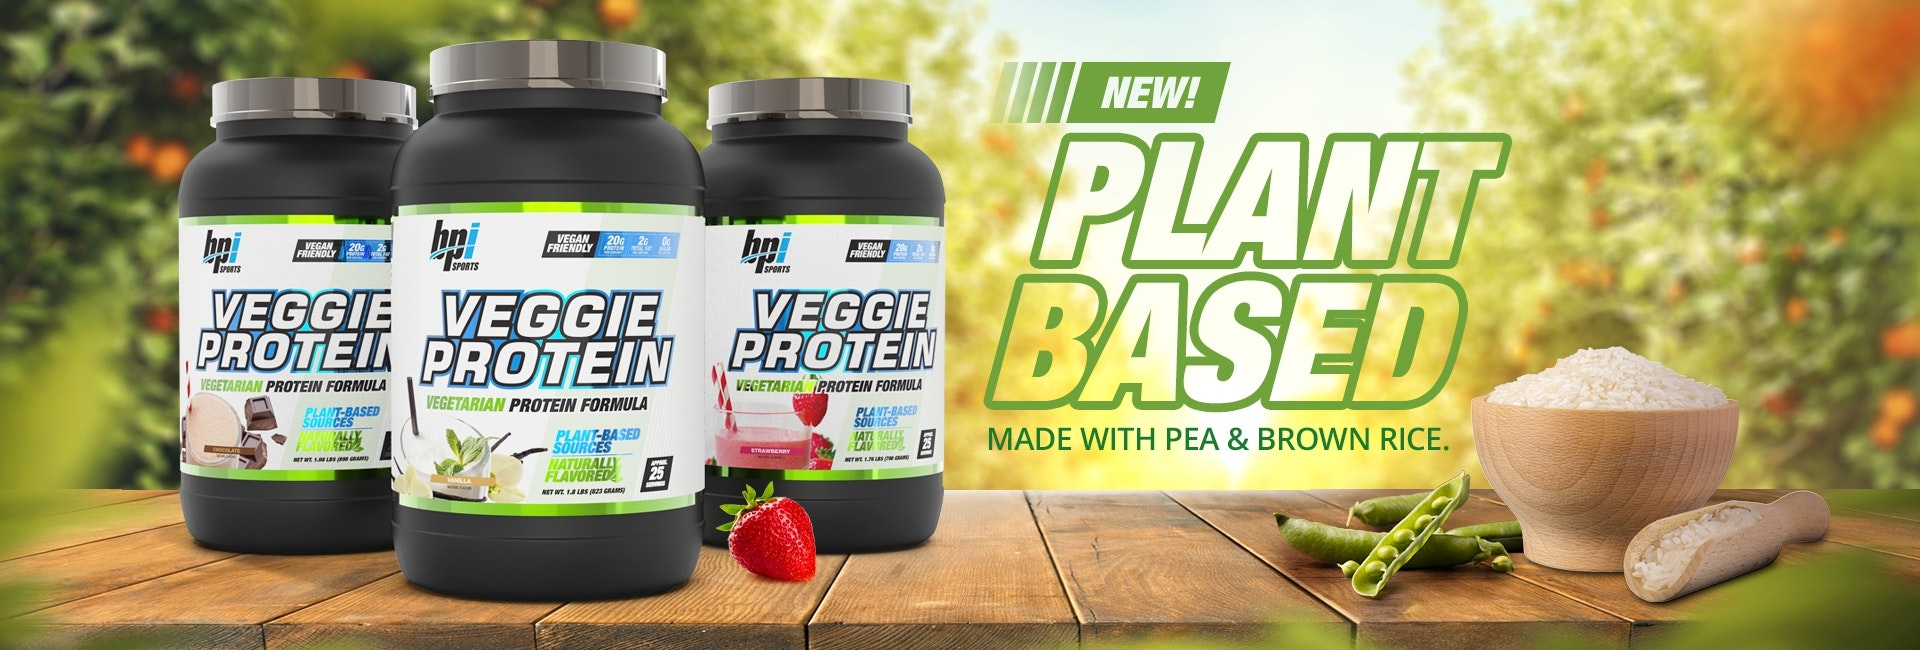 Veggie Protein! Now Available!